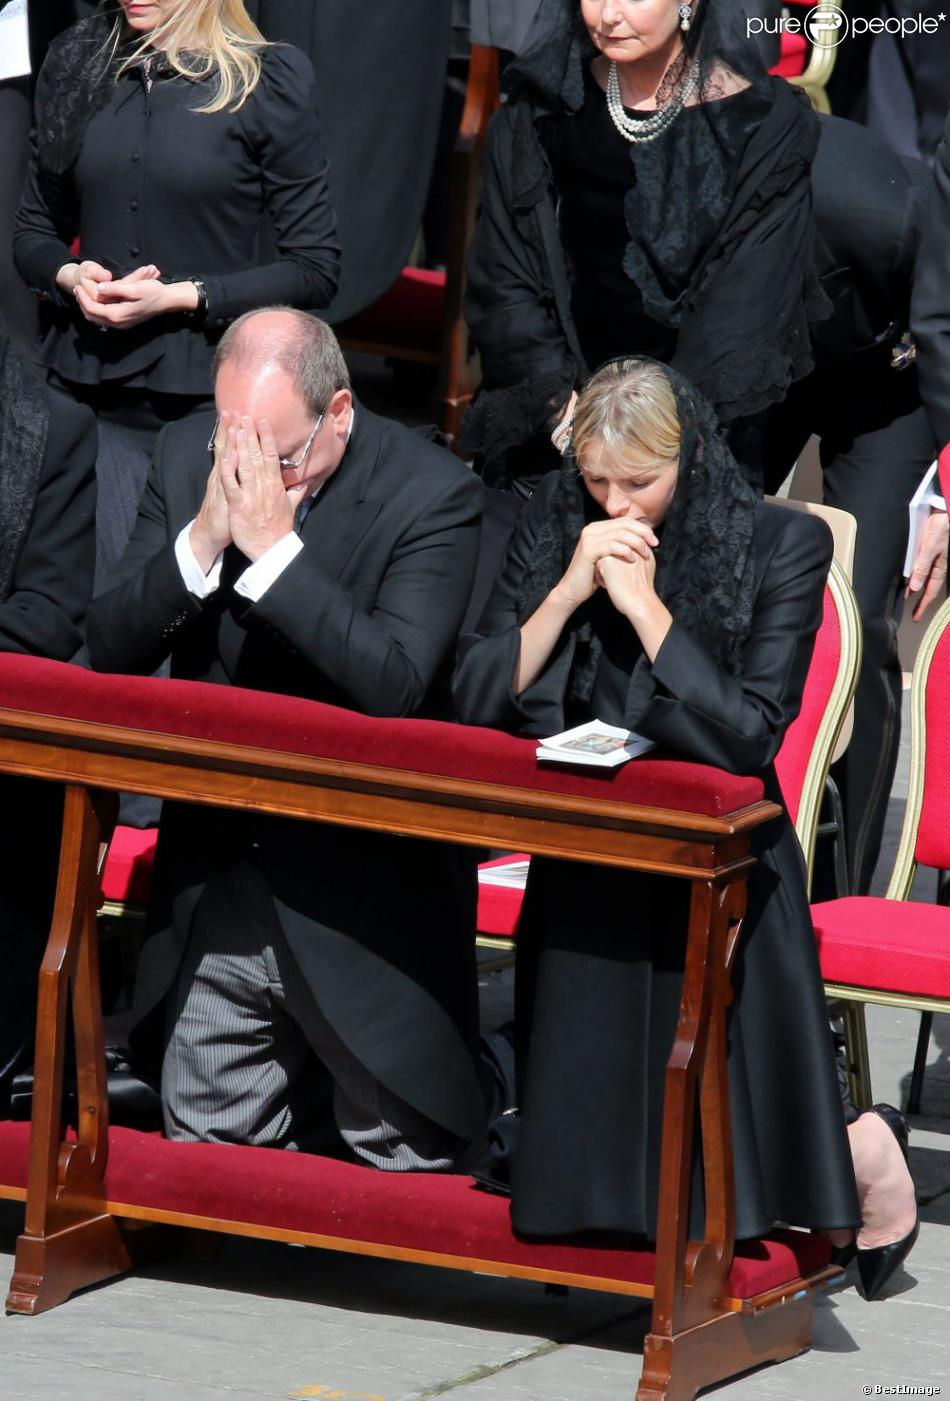 Le prince Albert II de Monaco et la princesse Charlene - Investiture du pape Francois sur la place Saint-Pierre de Rome. Le 19 mars 2013  Pope Francis inauguration mass at St Peter's square on March 19, 2013 at the Vatican, Rome, Italy. World leaders flew in for Pope Francis's inauguration mass in St Peter's Square on Tuesday where Latin America's first pontiff will receive the formal symbols of papal power.19/03/2013 - Rome